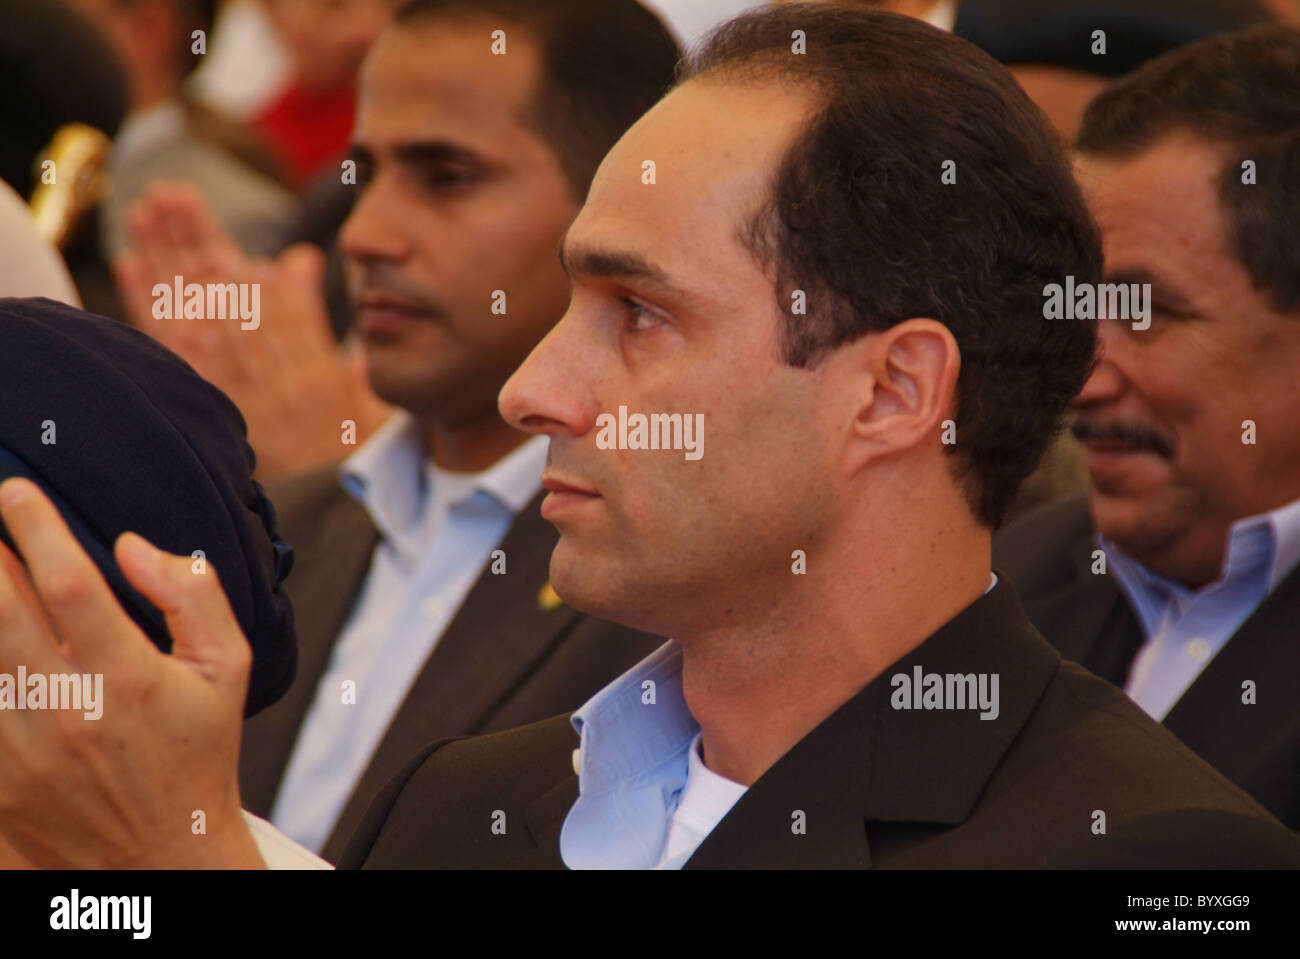 minya 2005 gamal mubarak attends a re election rally for